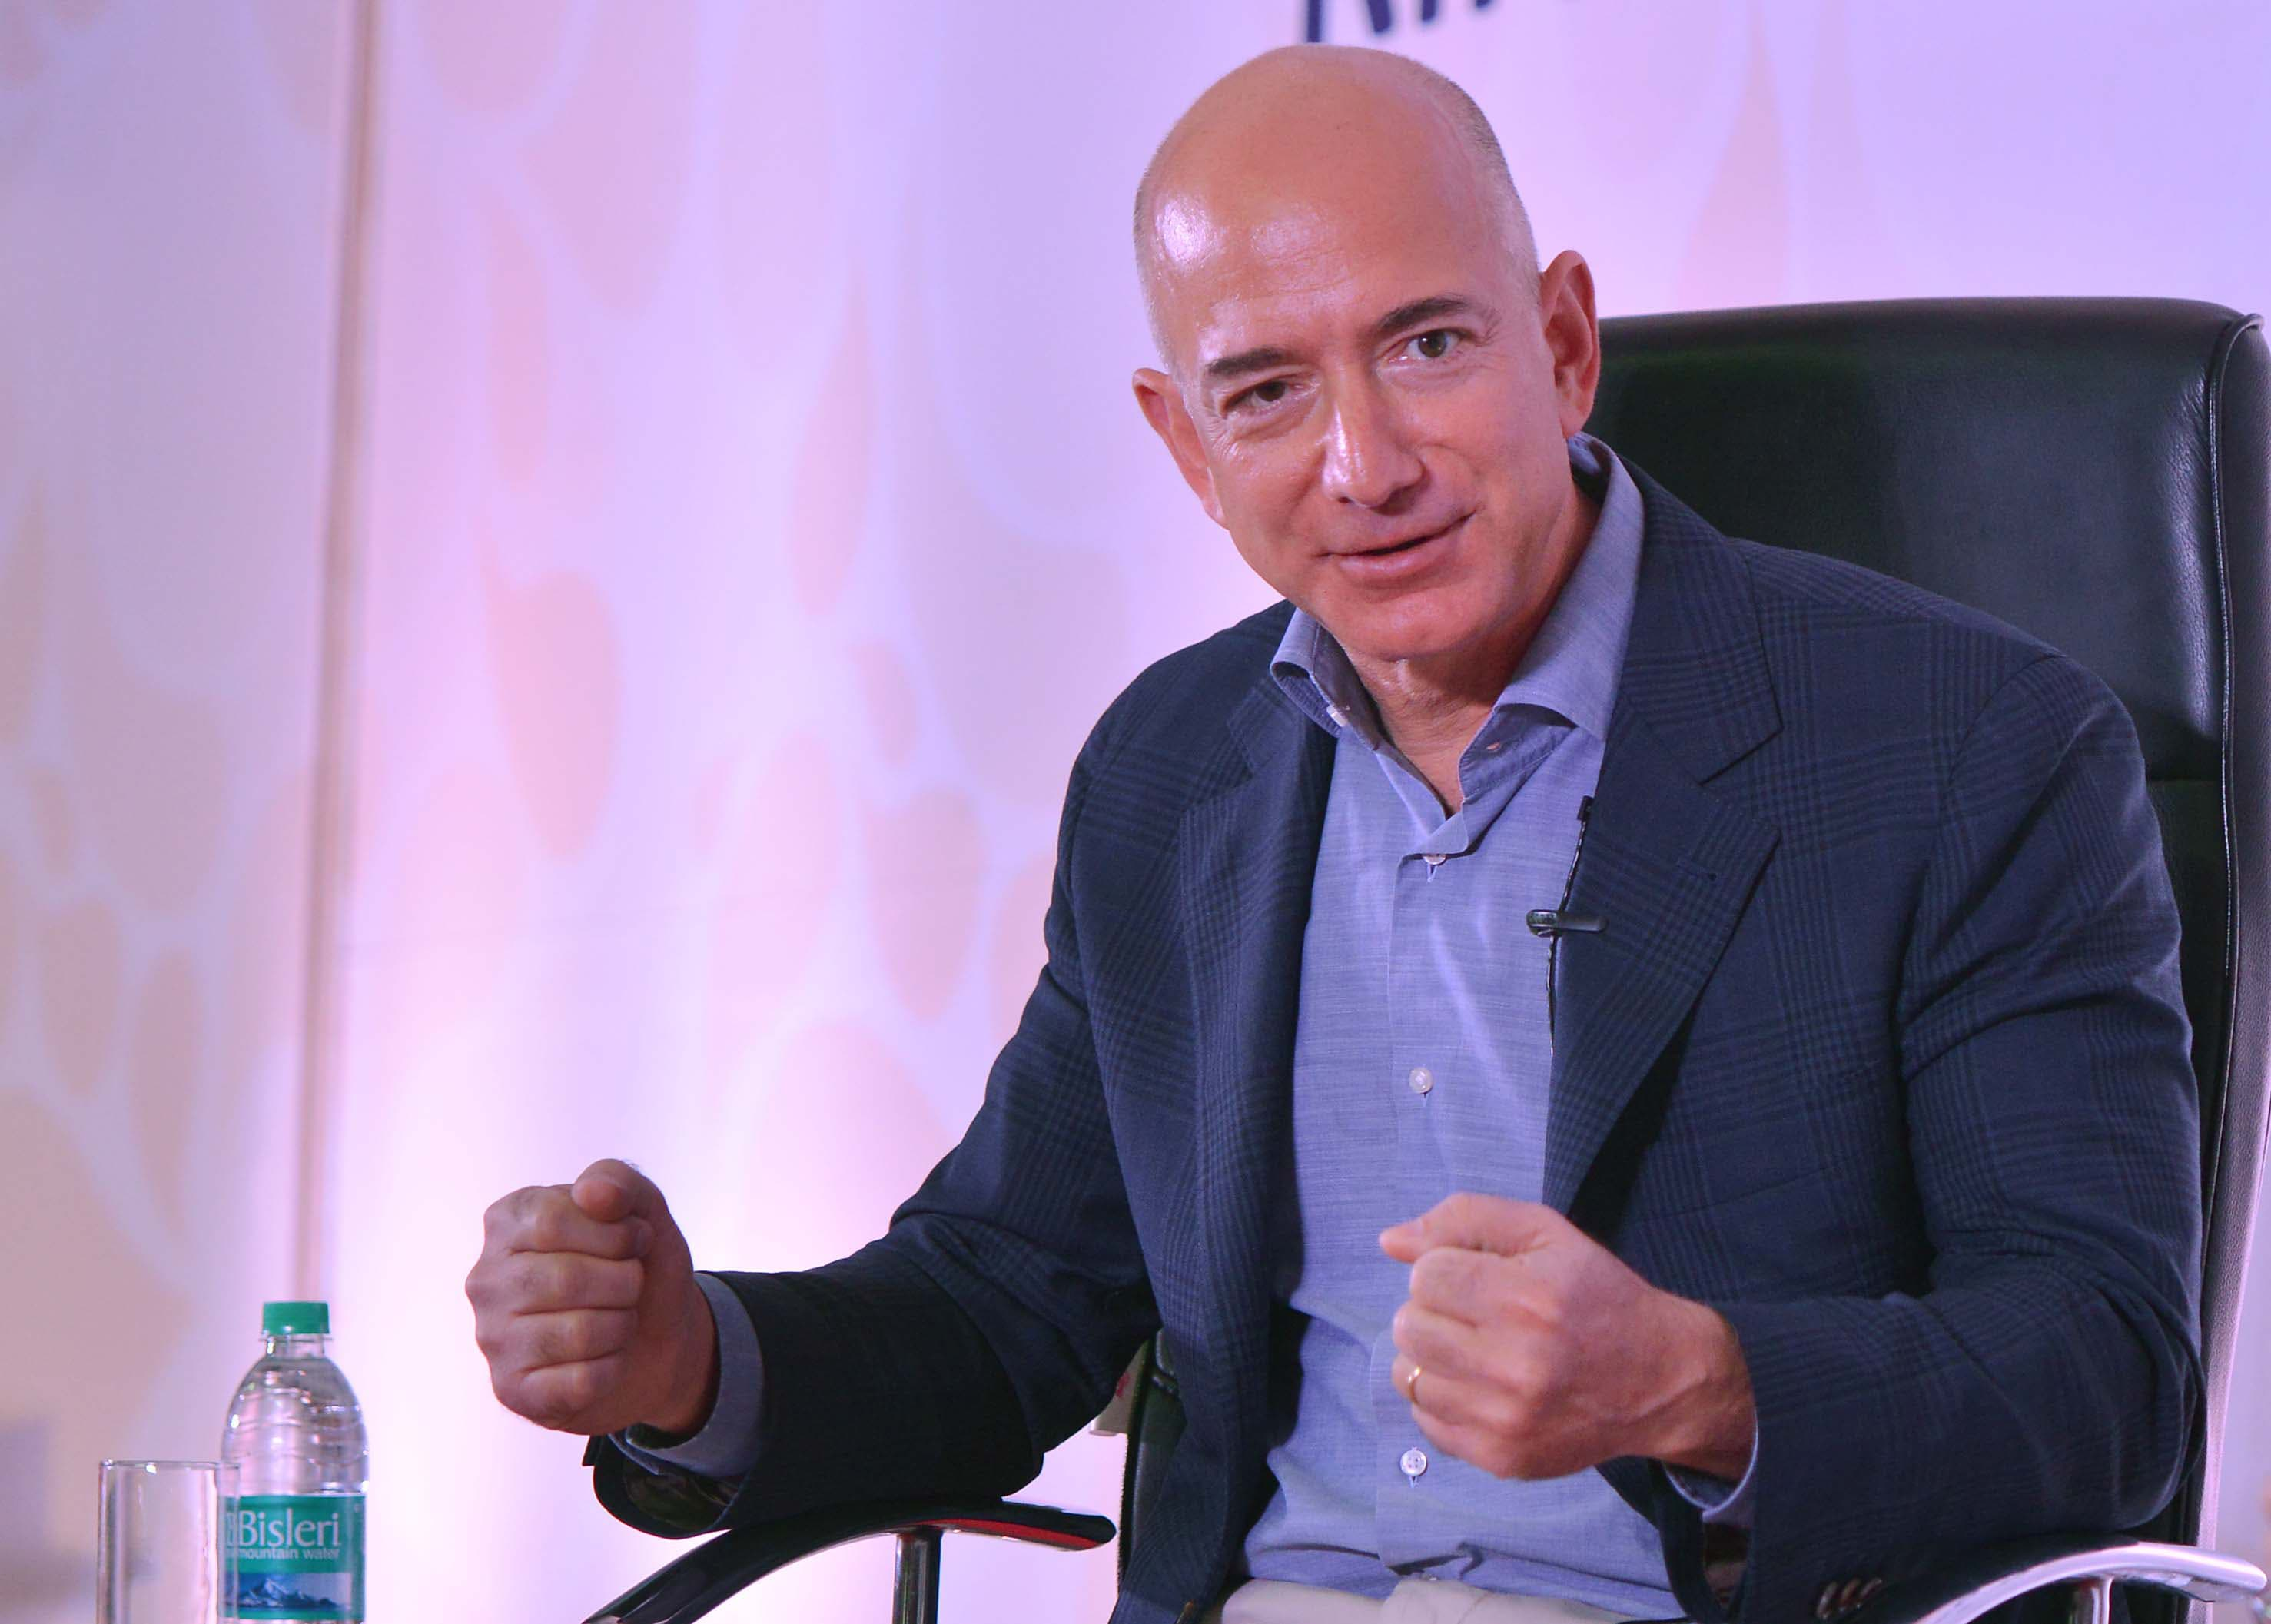 Amazon's talks with JP Morgan may build on services to the